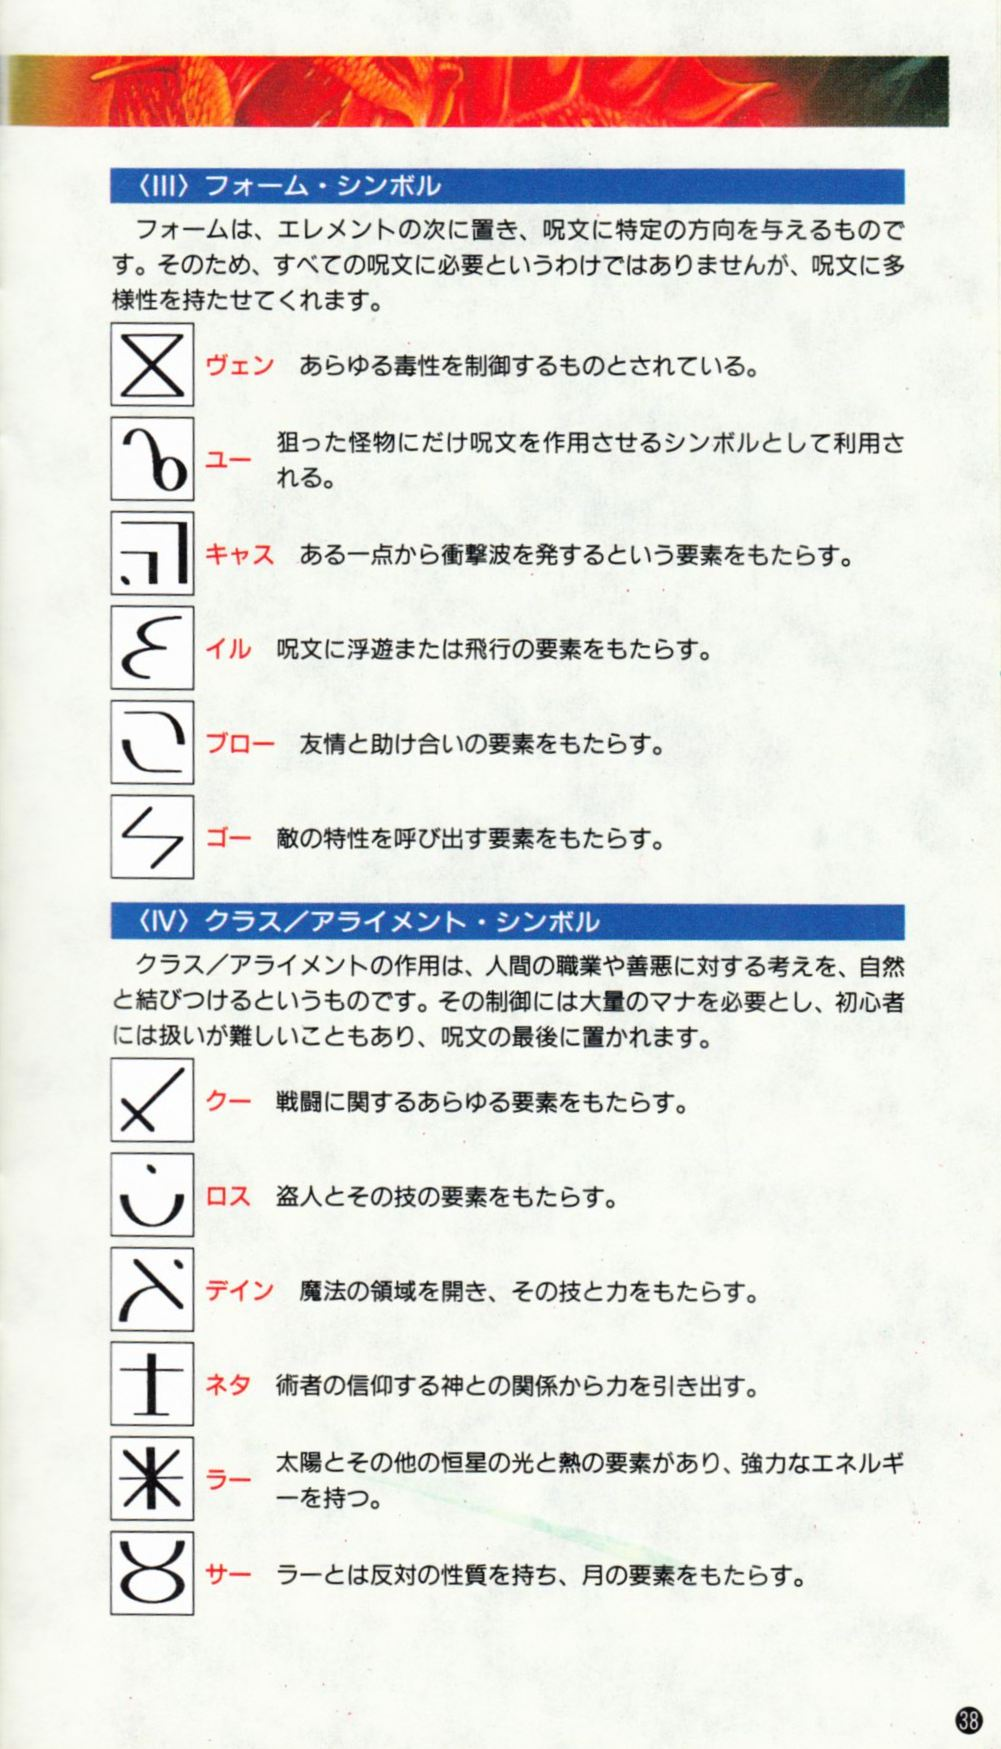 Game - Dungeon Master - JP - Super Famicom - Manual - Page 041 - Scan